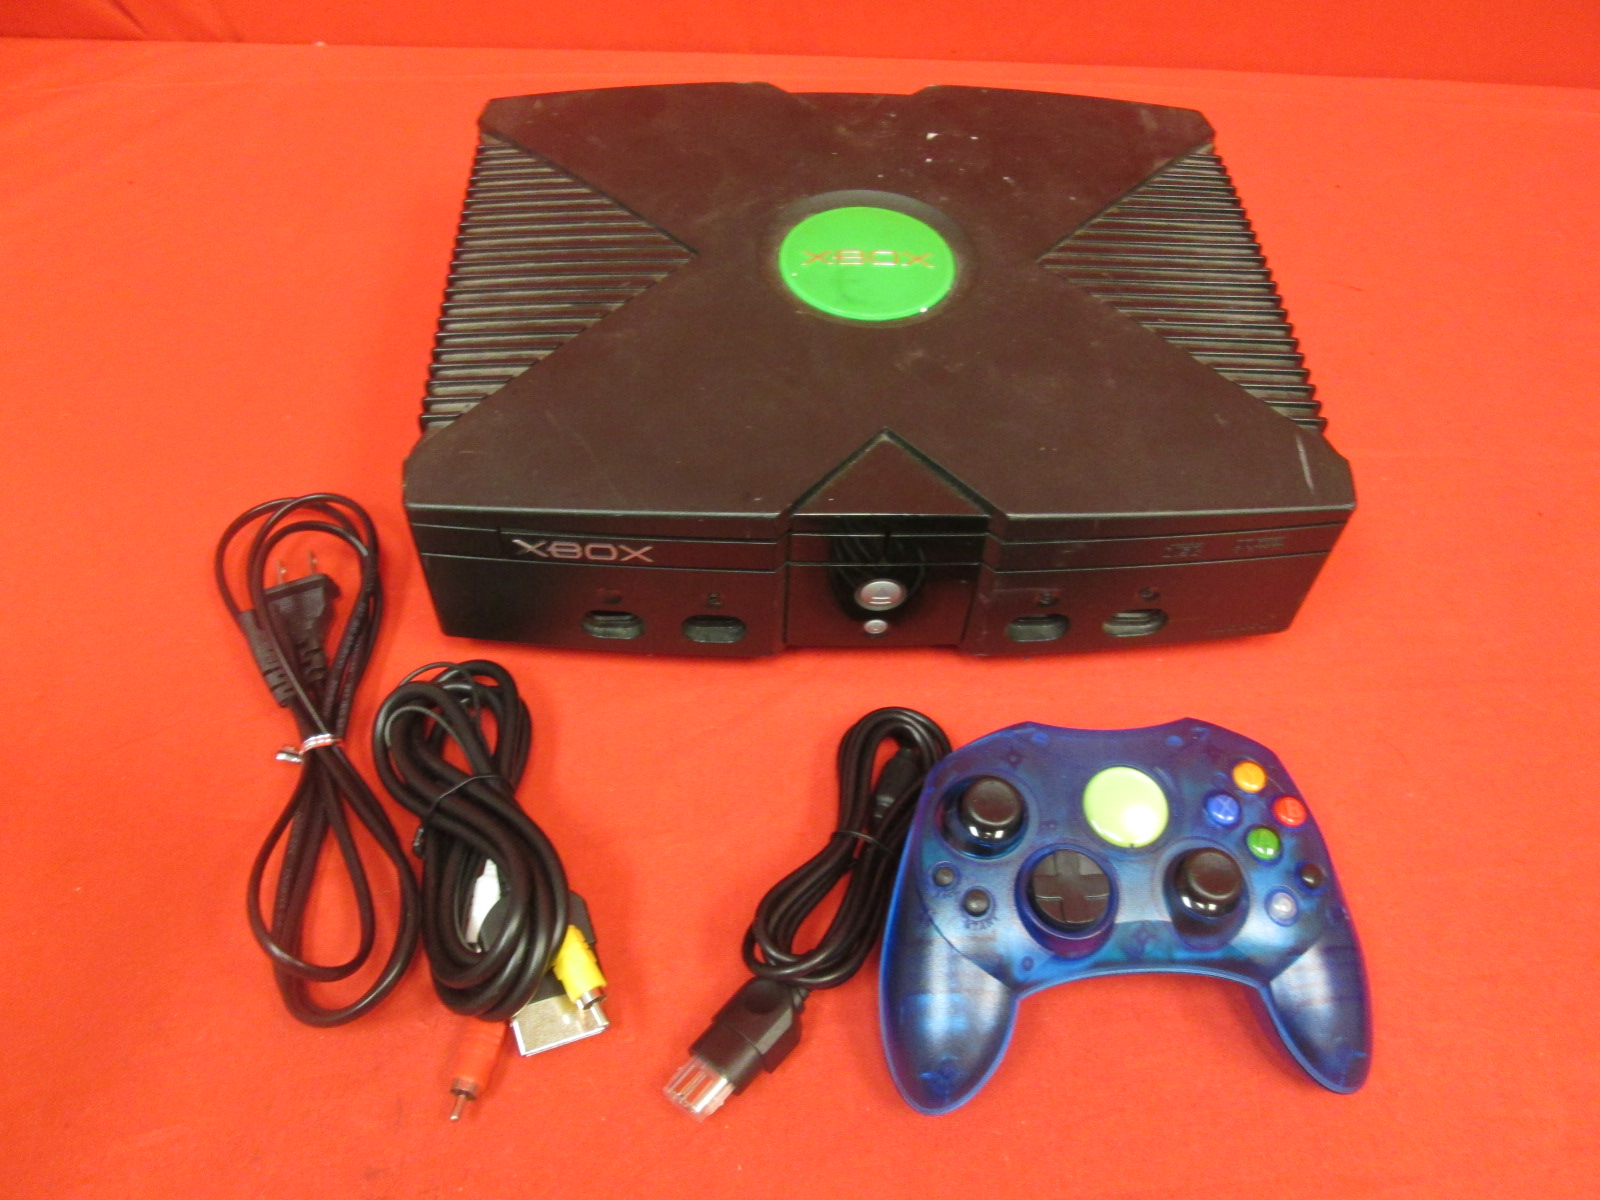 Xbox Original Video Game Console With Controller